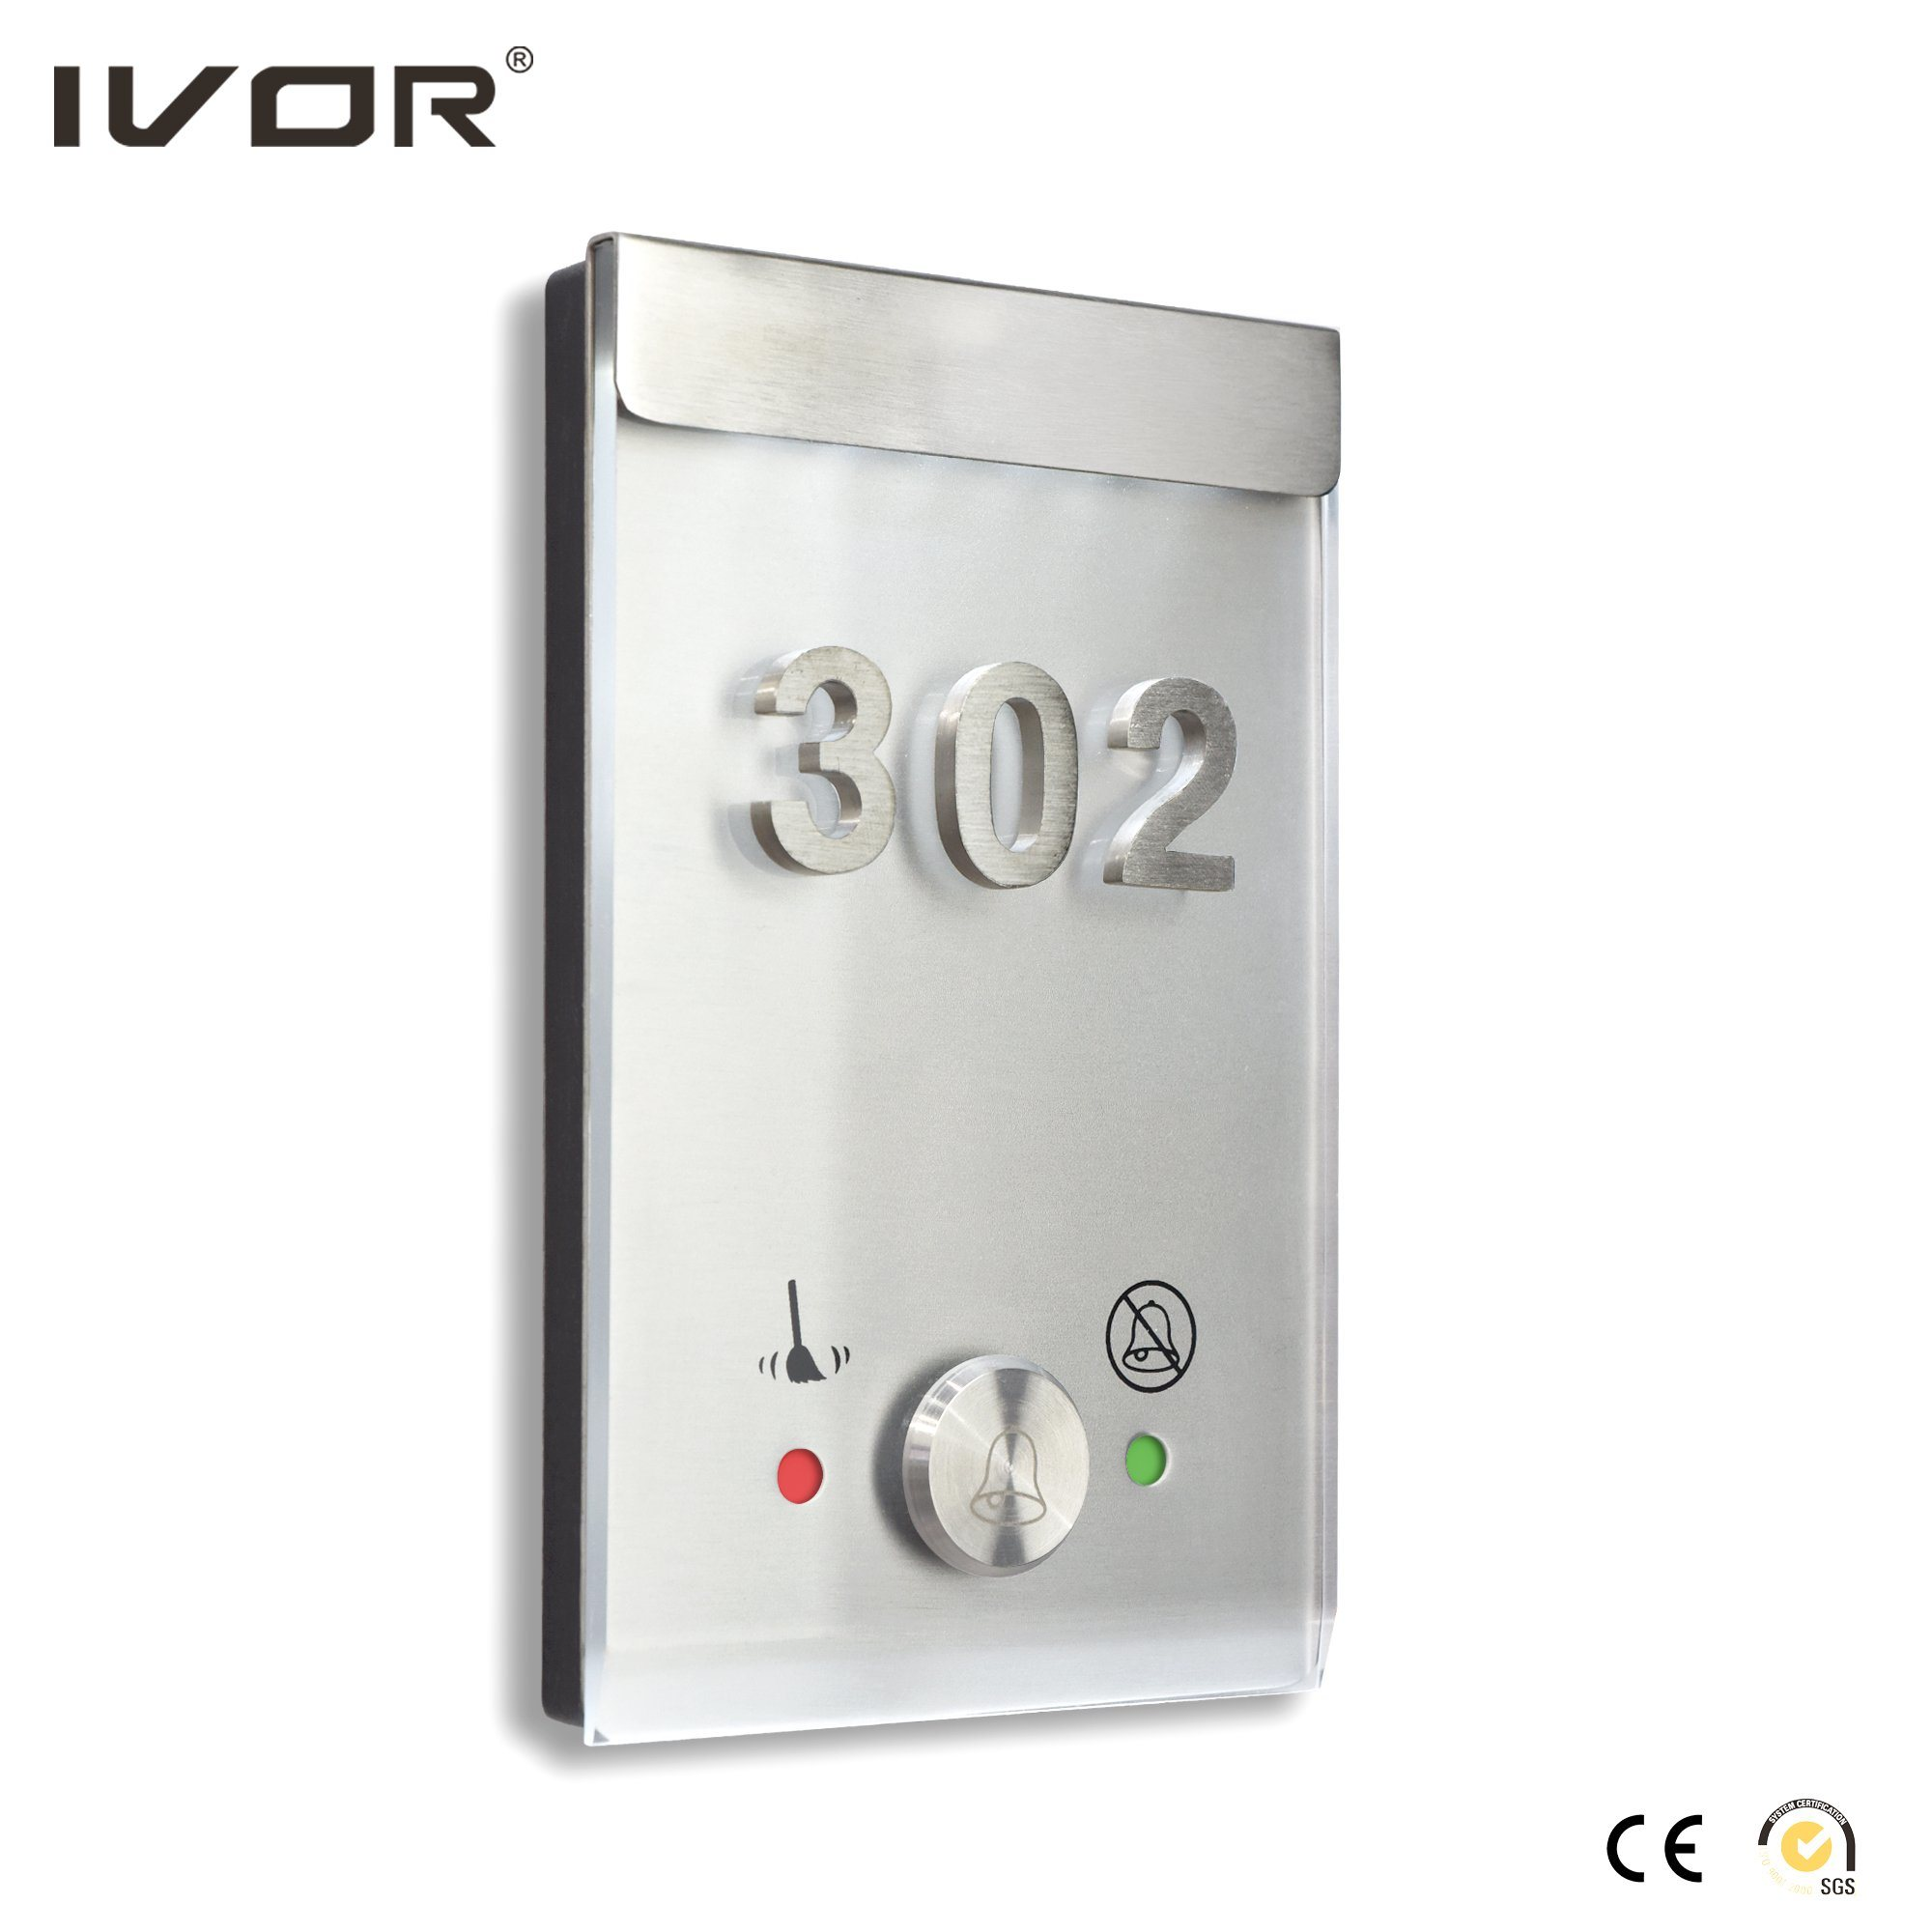 Hotel Doorbell System Outdoor Panel (IV-dB-X1)